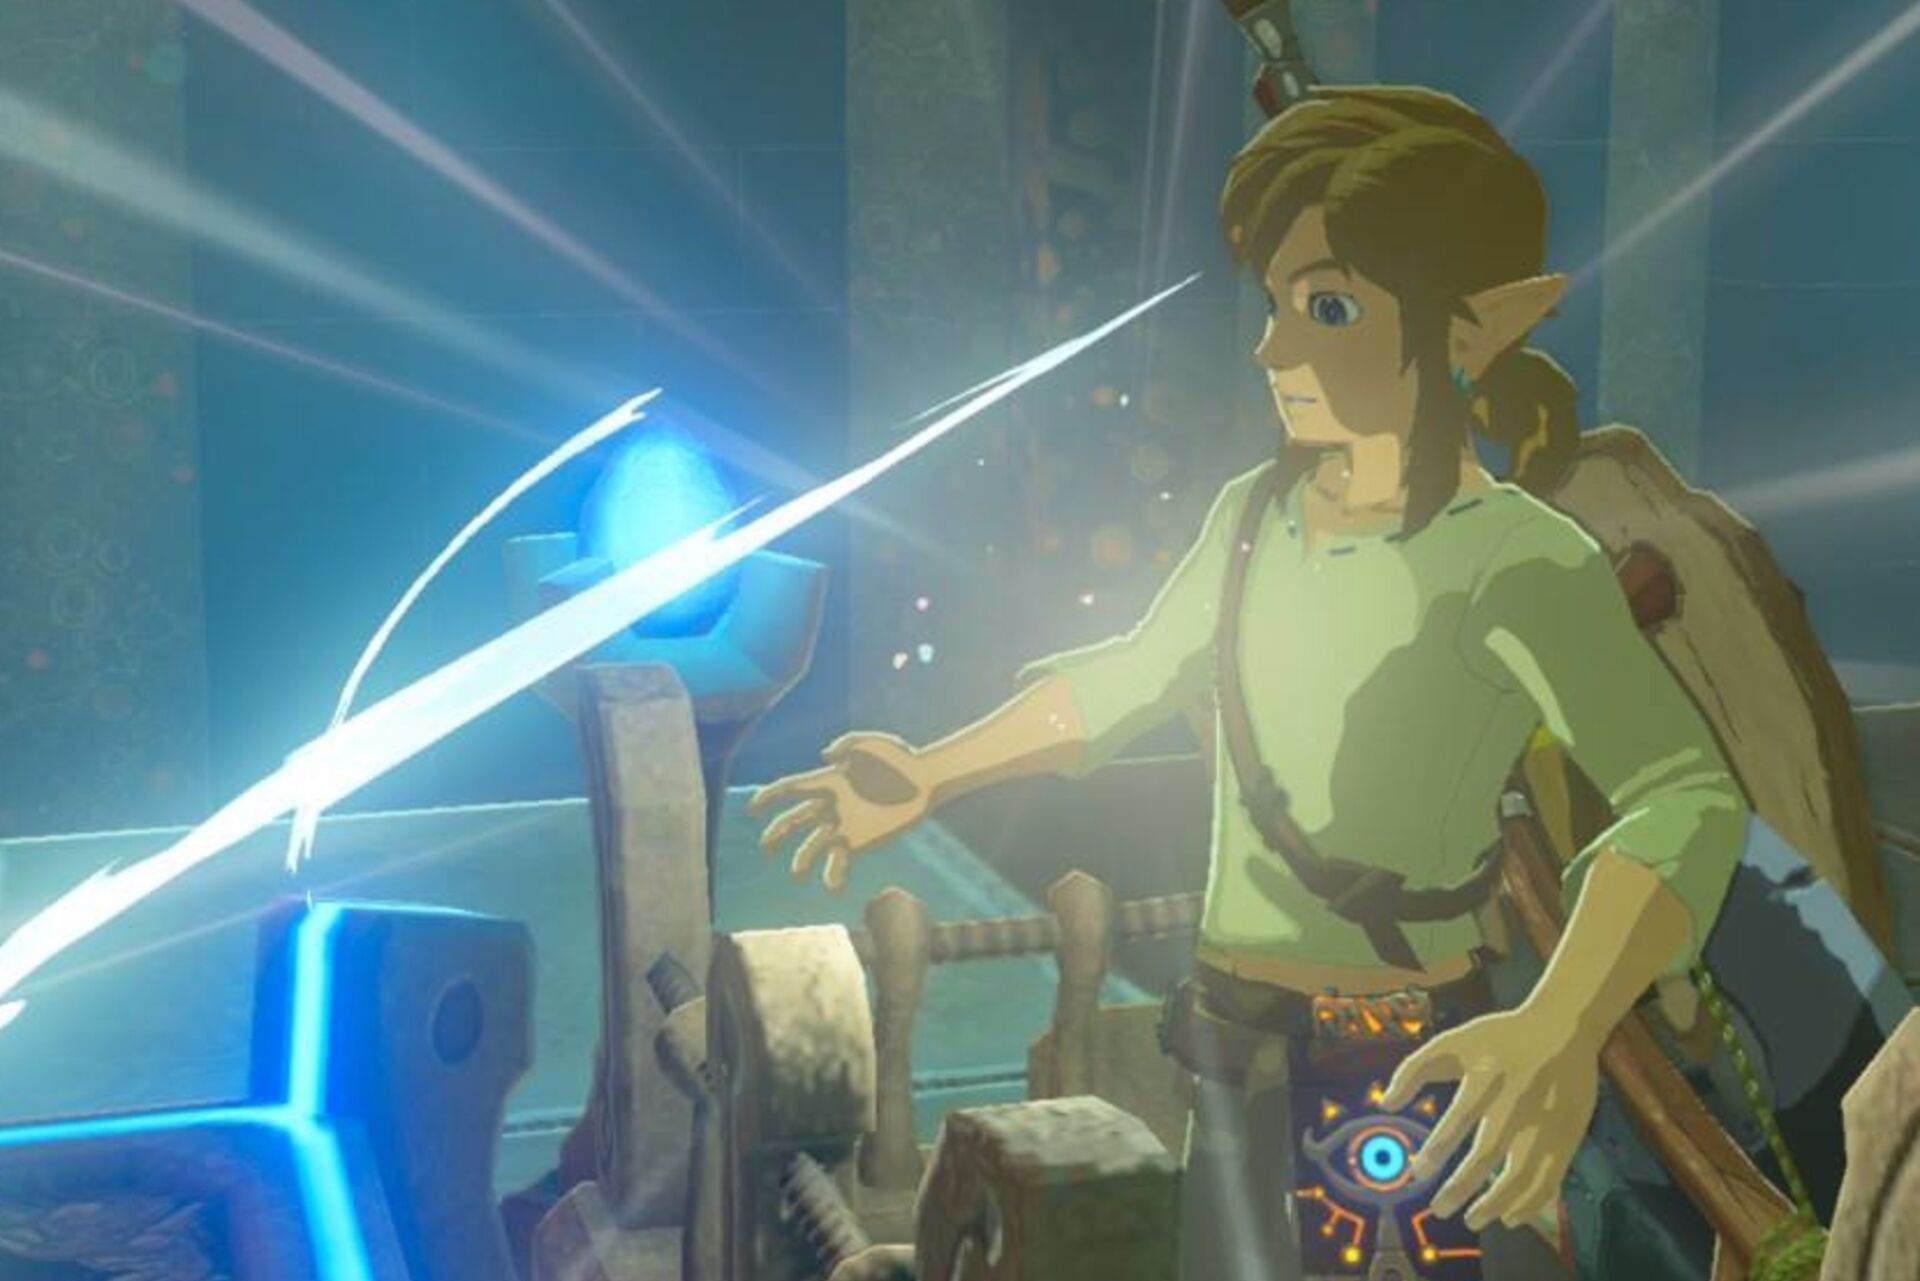 So much of the magic of Zelda's reinvention is visible in